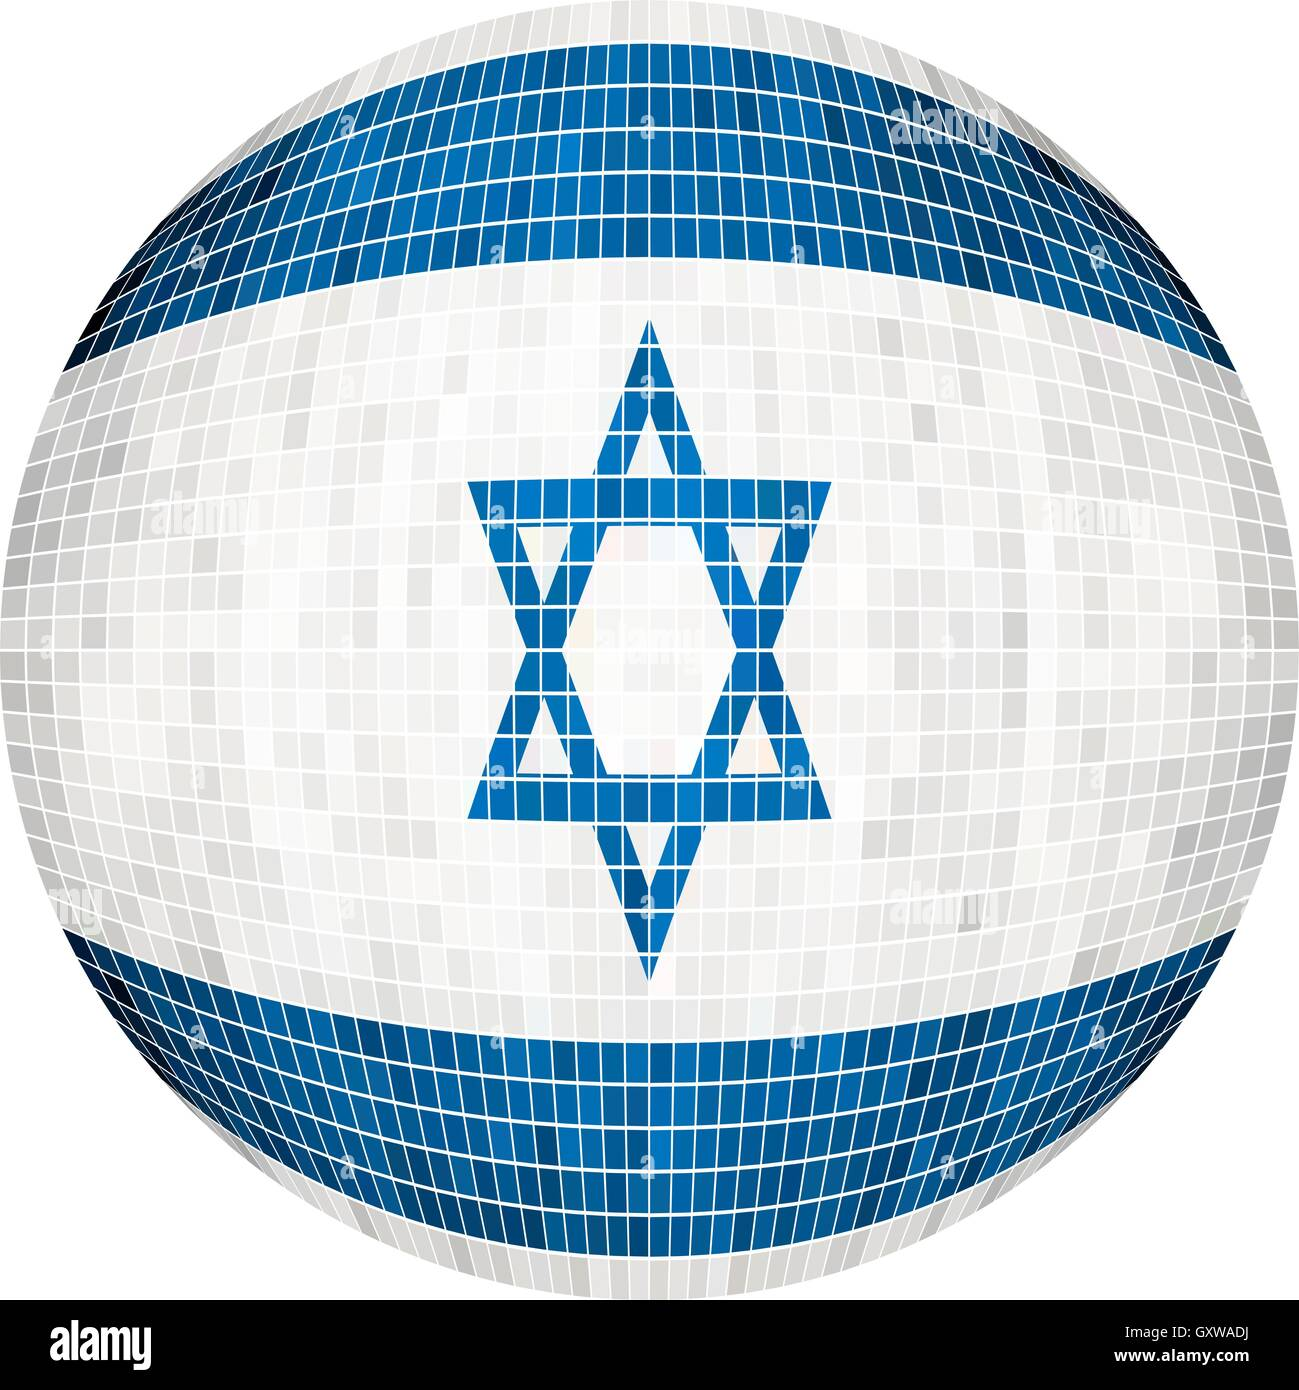 Ball with Israel flag - Illustration,  Sphere Israel Flag vector,   Abstract Grunge Mosaic flag of Israel in circle - Stock Vector